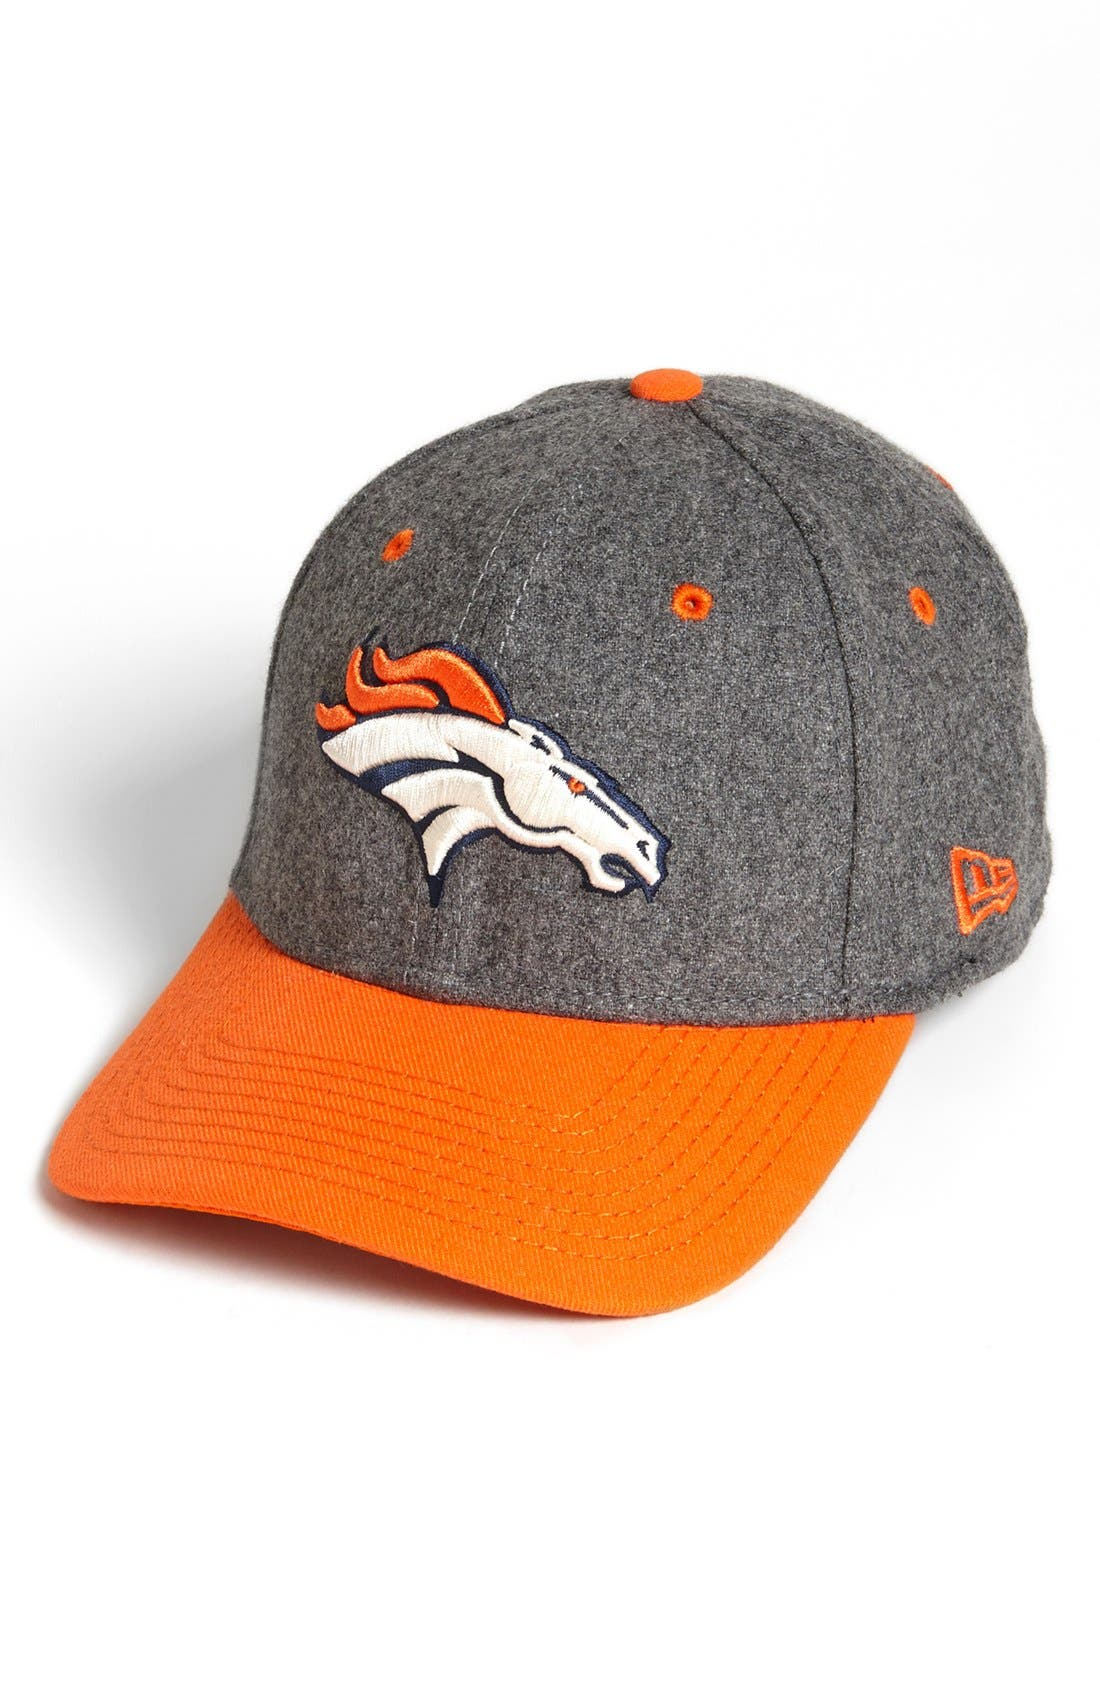 Main Image - New Era Cap 'Meltop - Denver Broncos' Fitted Baseball Cap